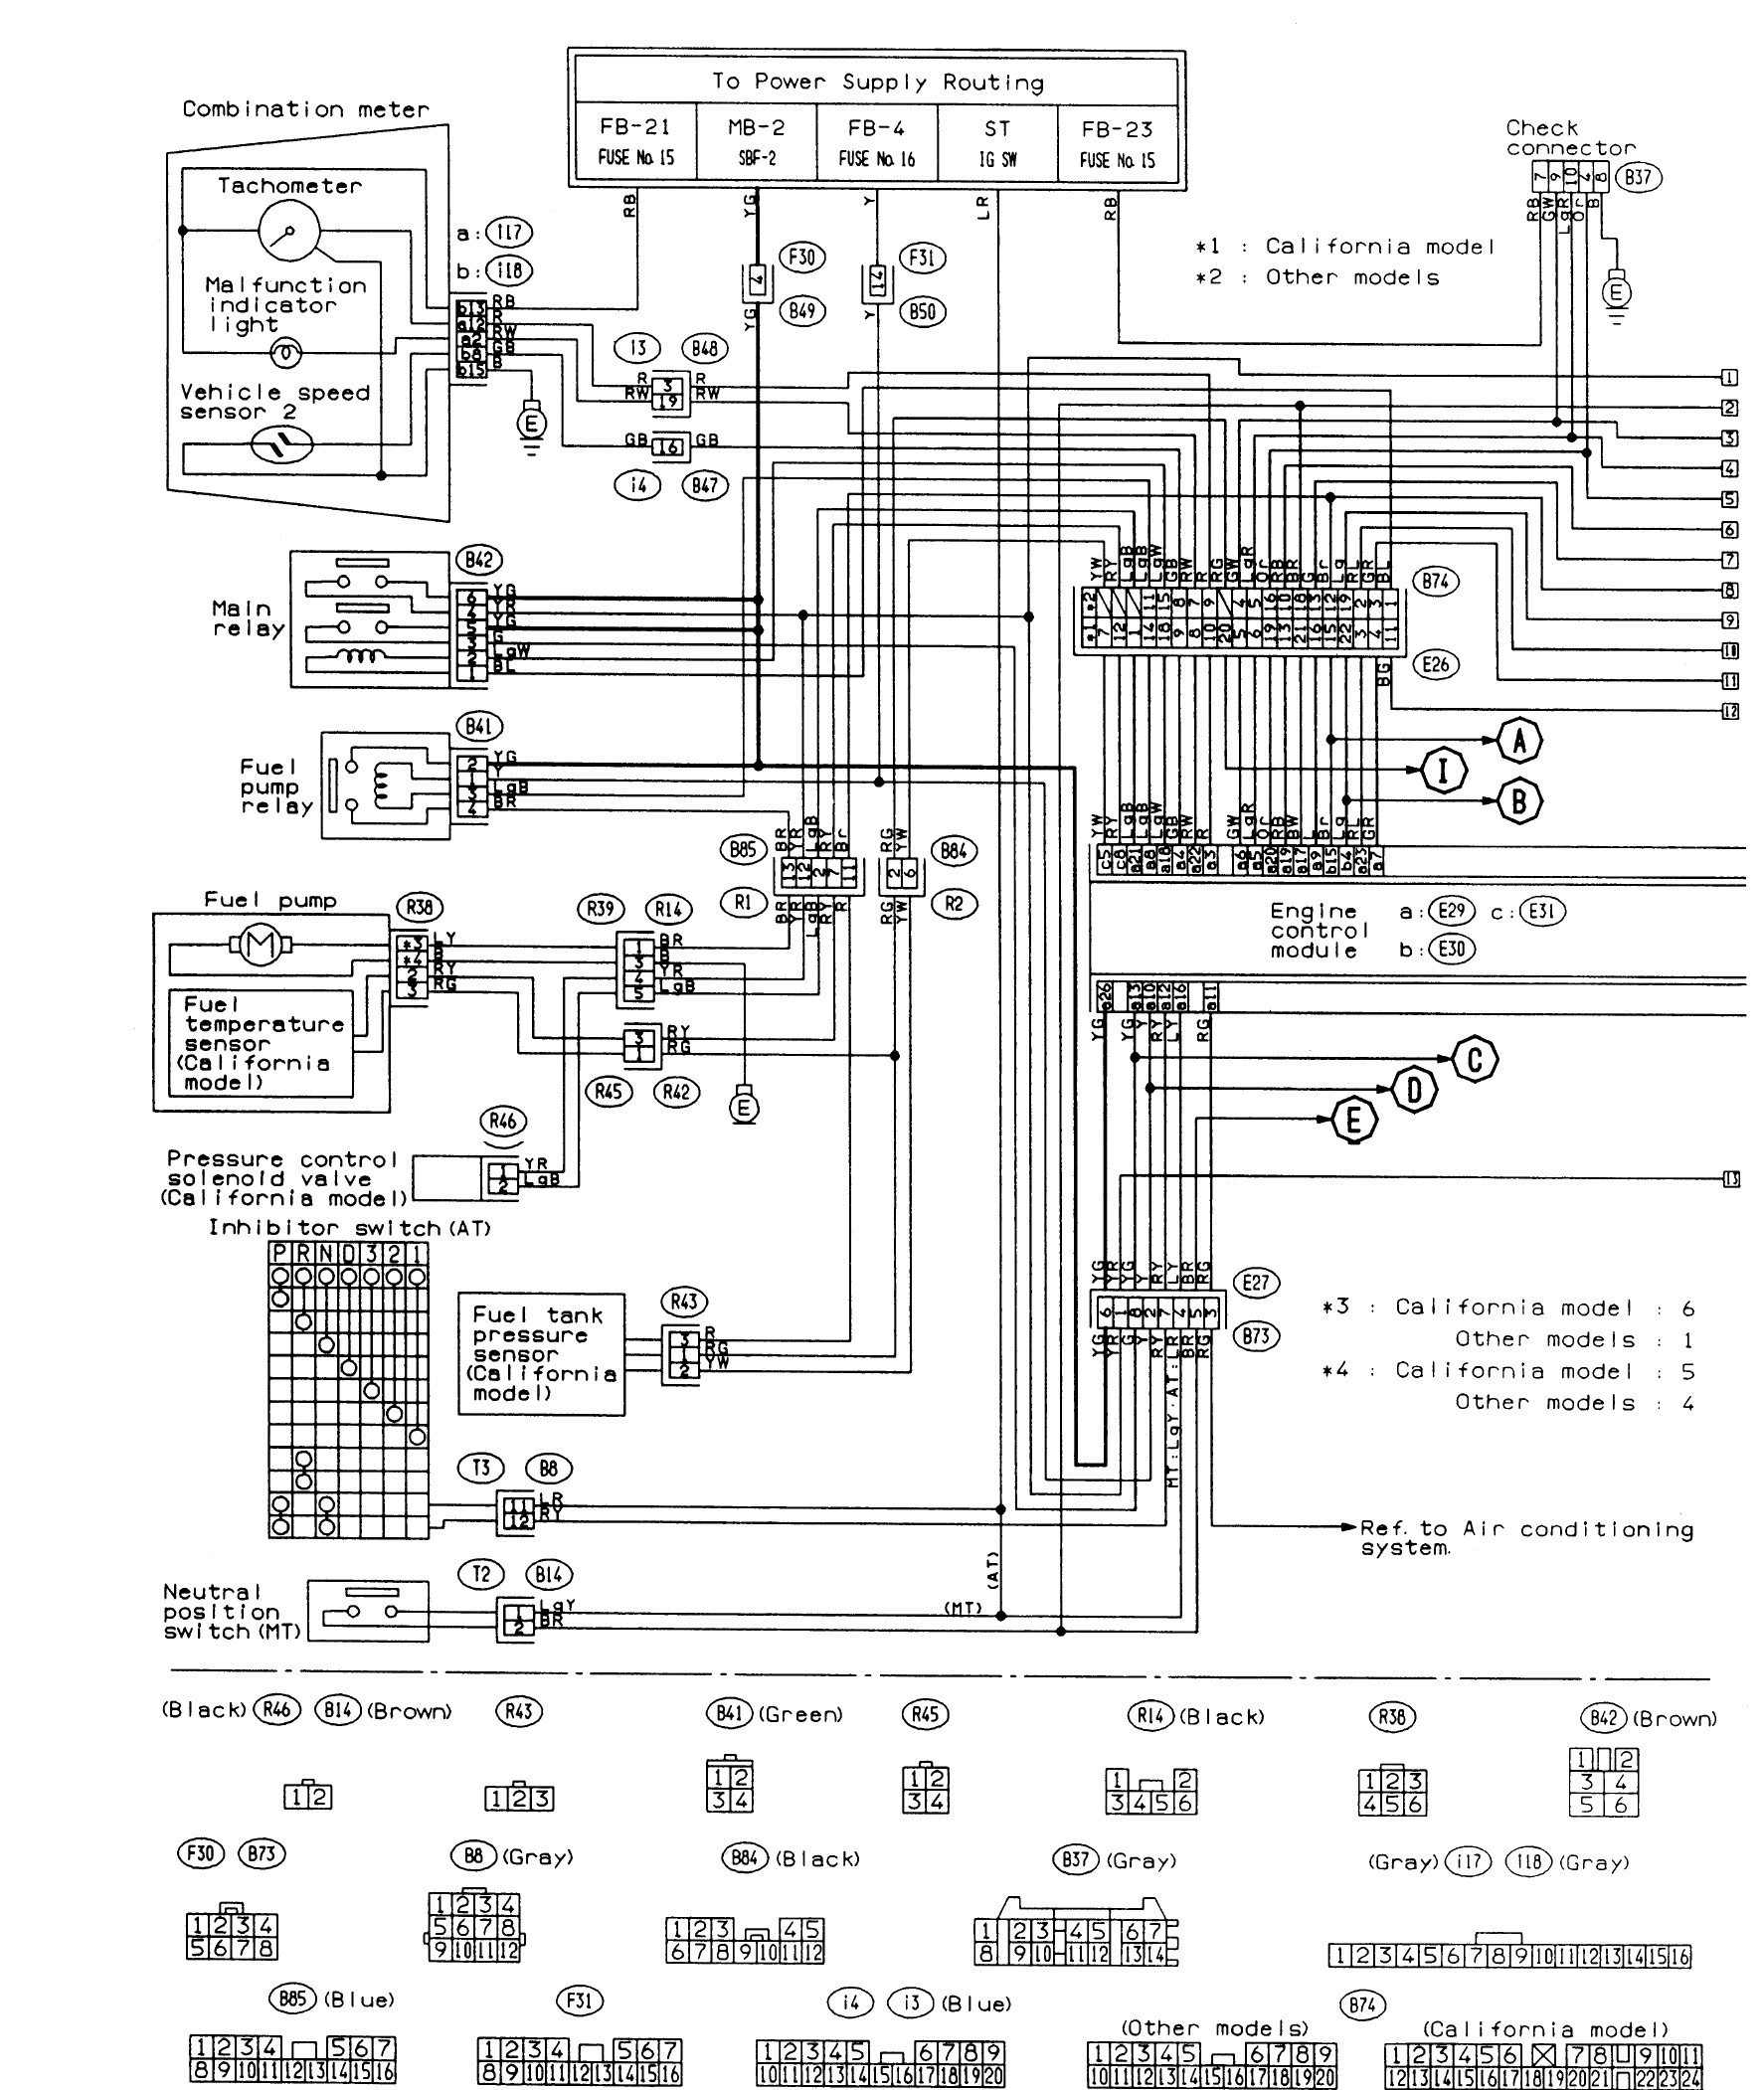 2002 Sebring Engine Diagram 2008 Subaru Impreza Engine Diagram Wiring Diagram Paper Of 2002 Sebring Engine Diagram